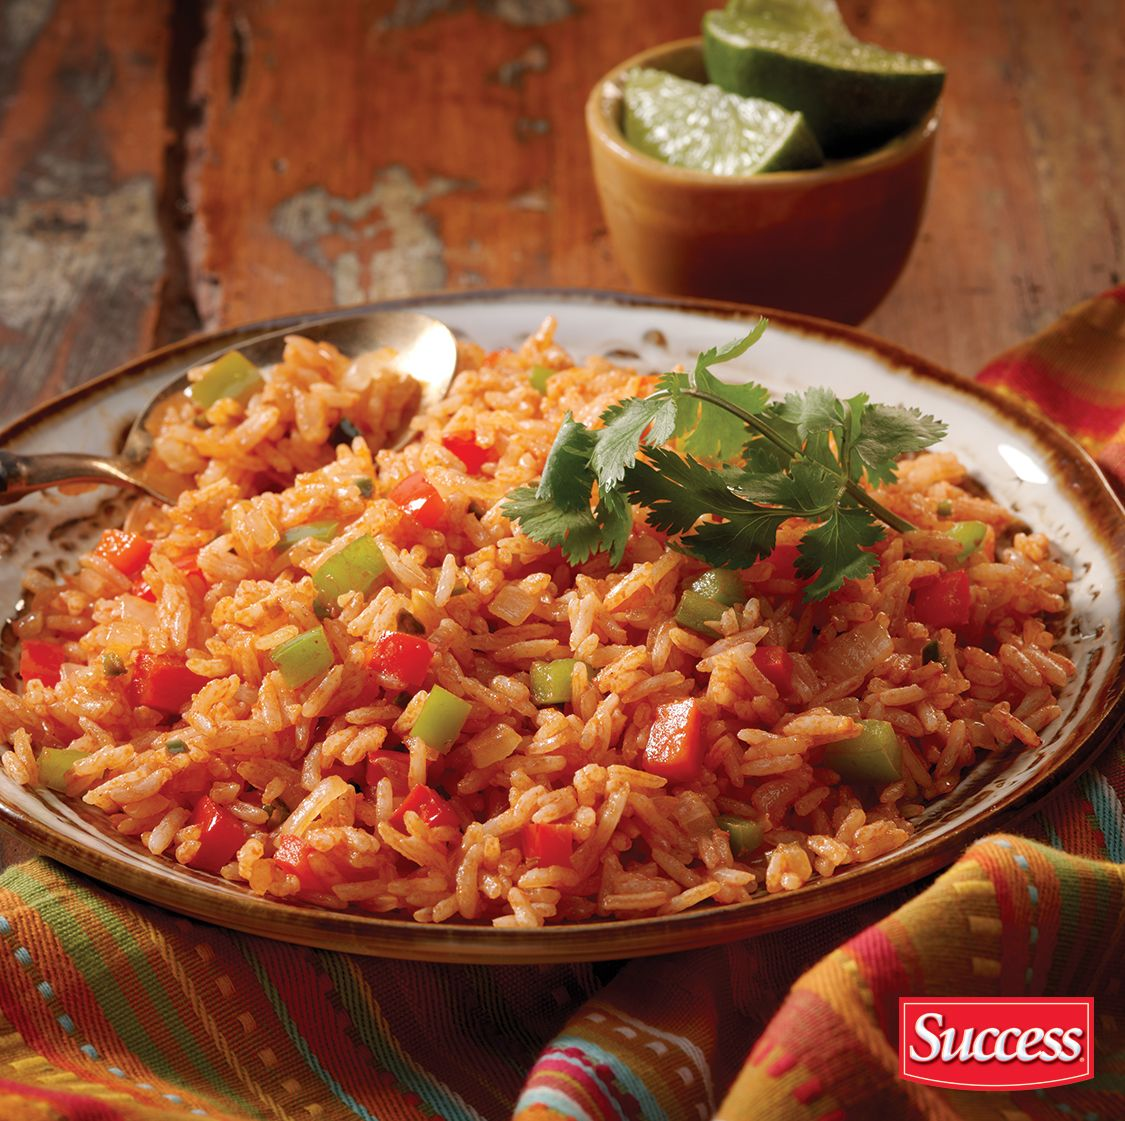 Delicious Mexican Rice Made With Boil In Bag Success Rice By The